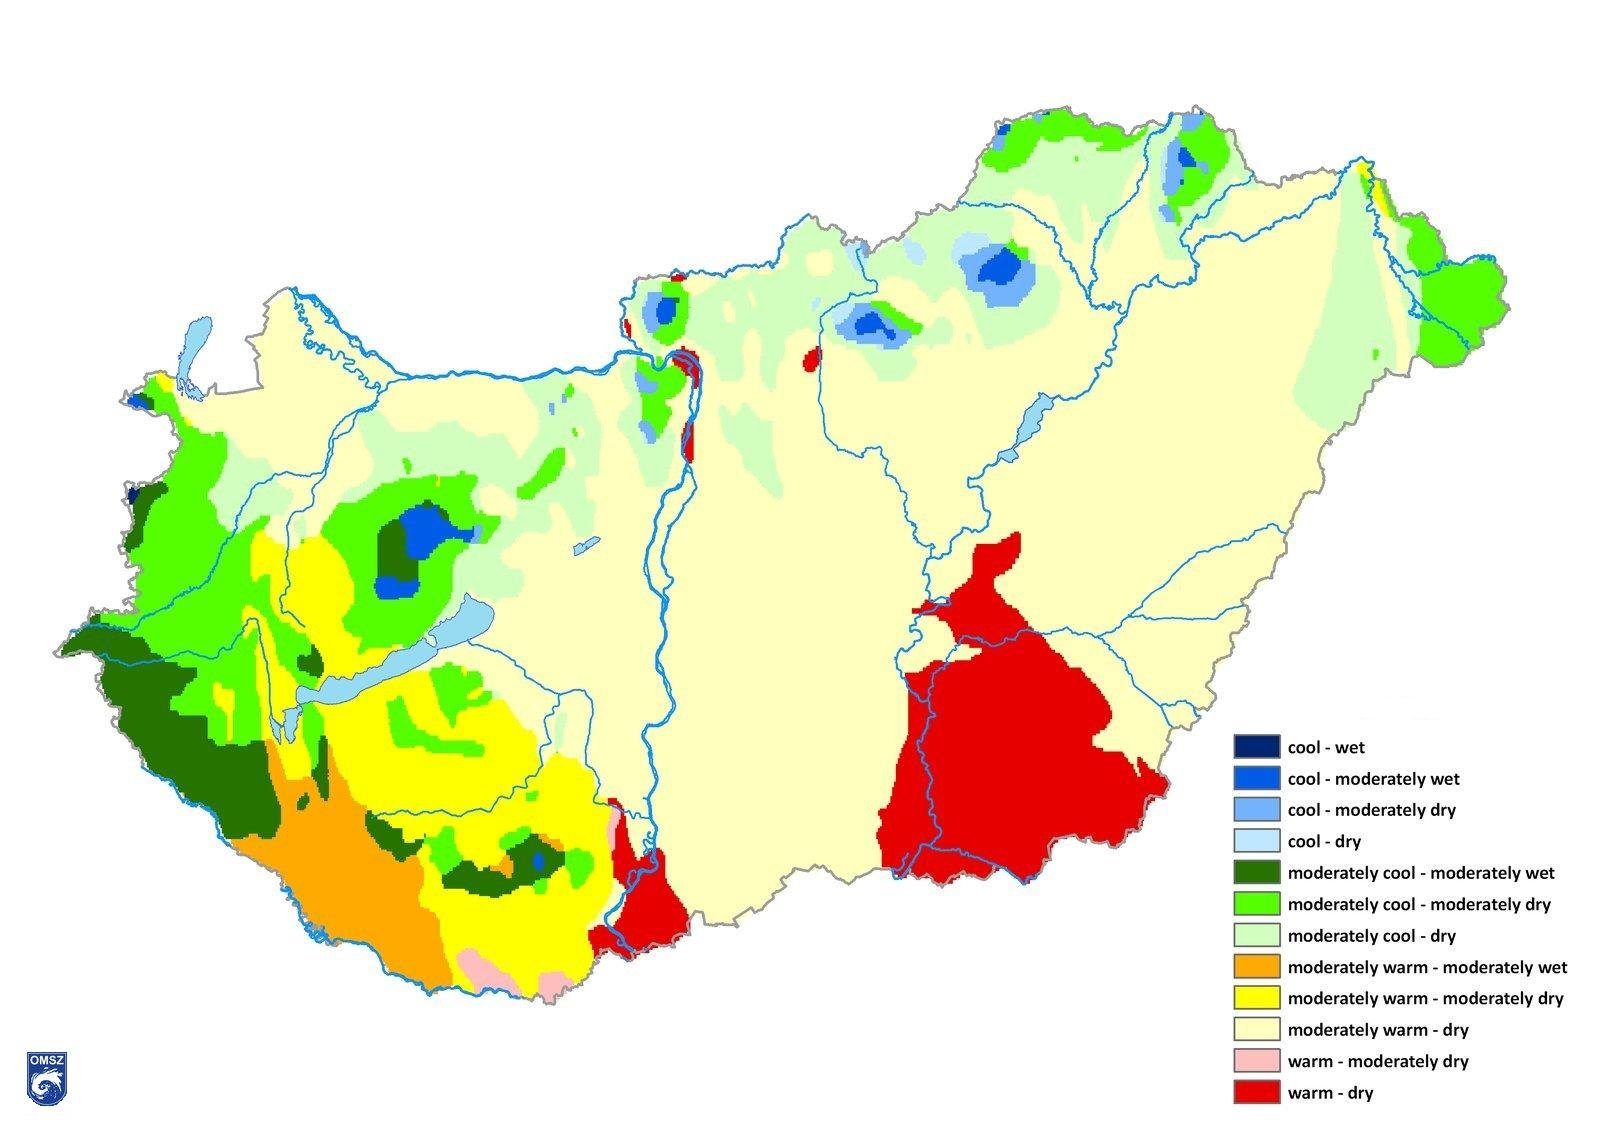 Figure: The Climatic Regions In Hungary (after György Péczeli)